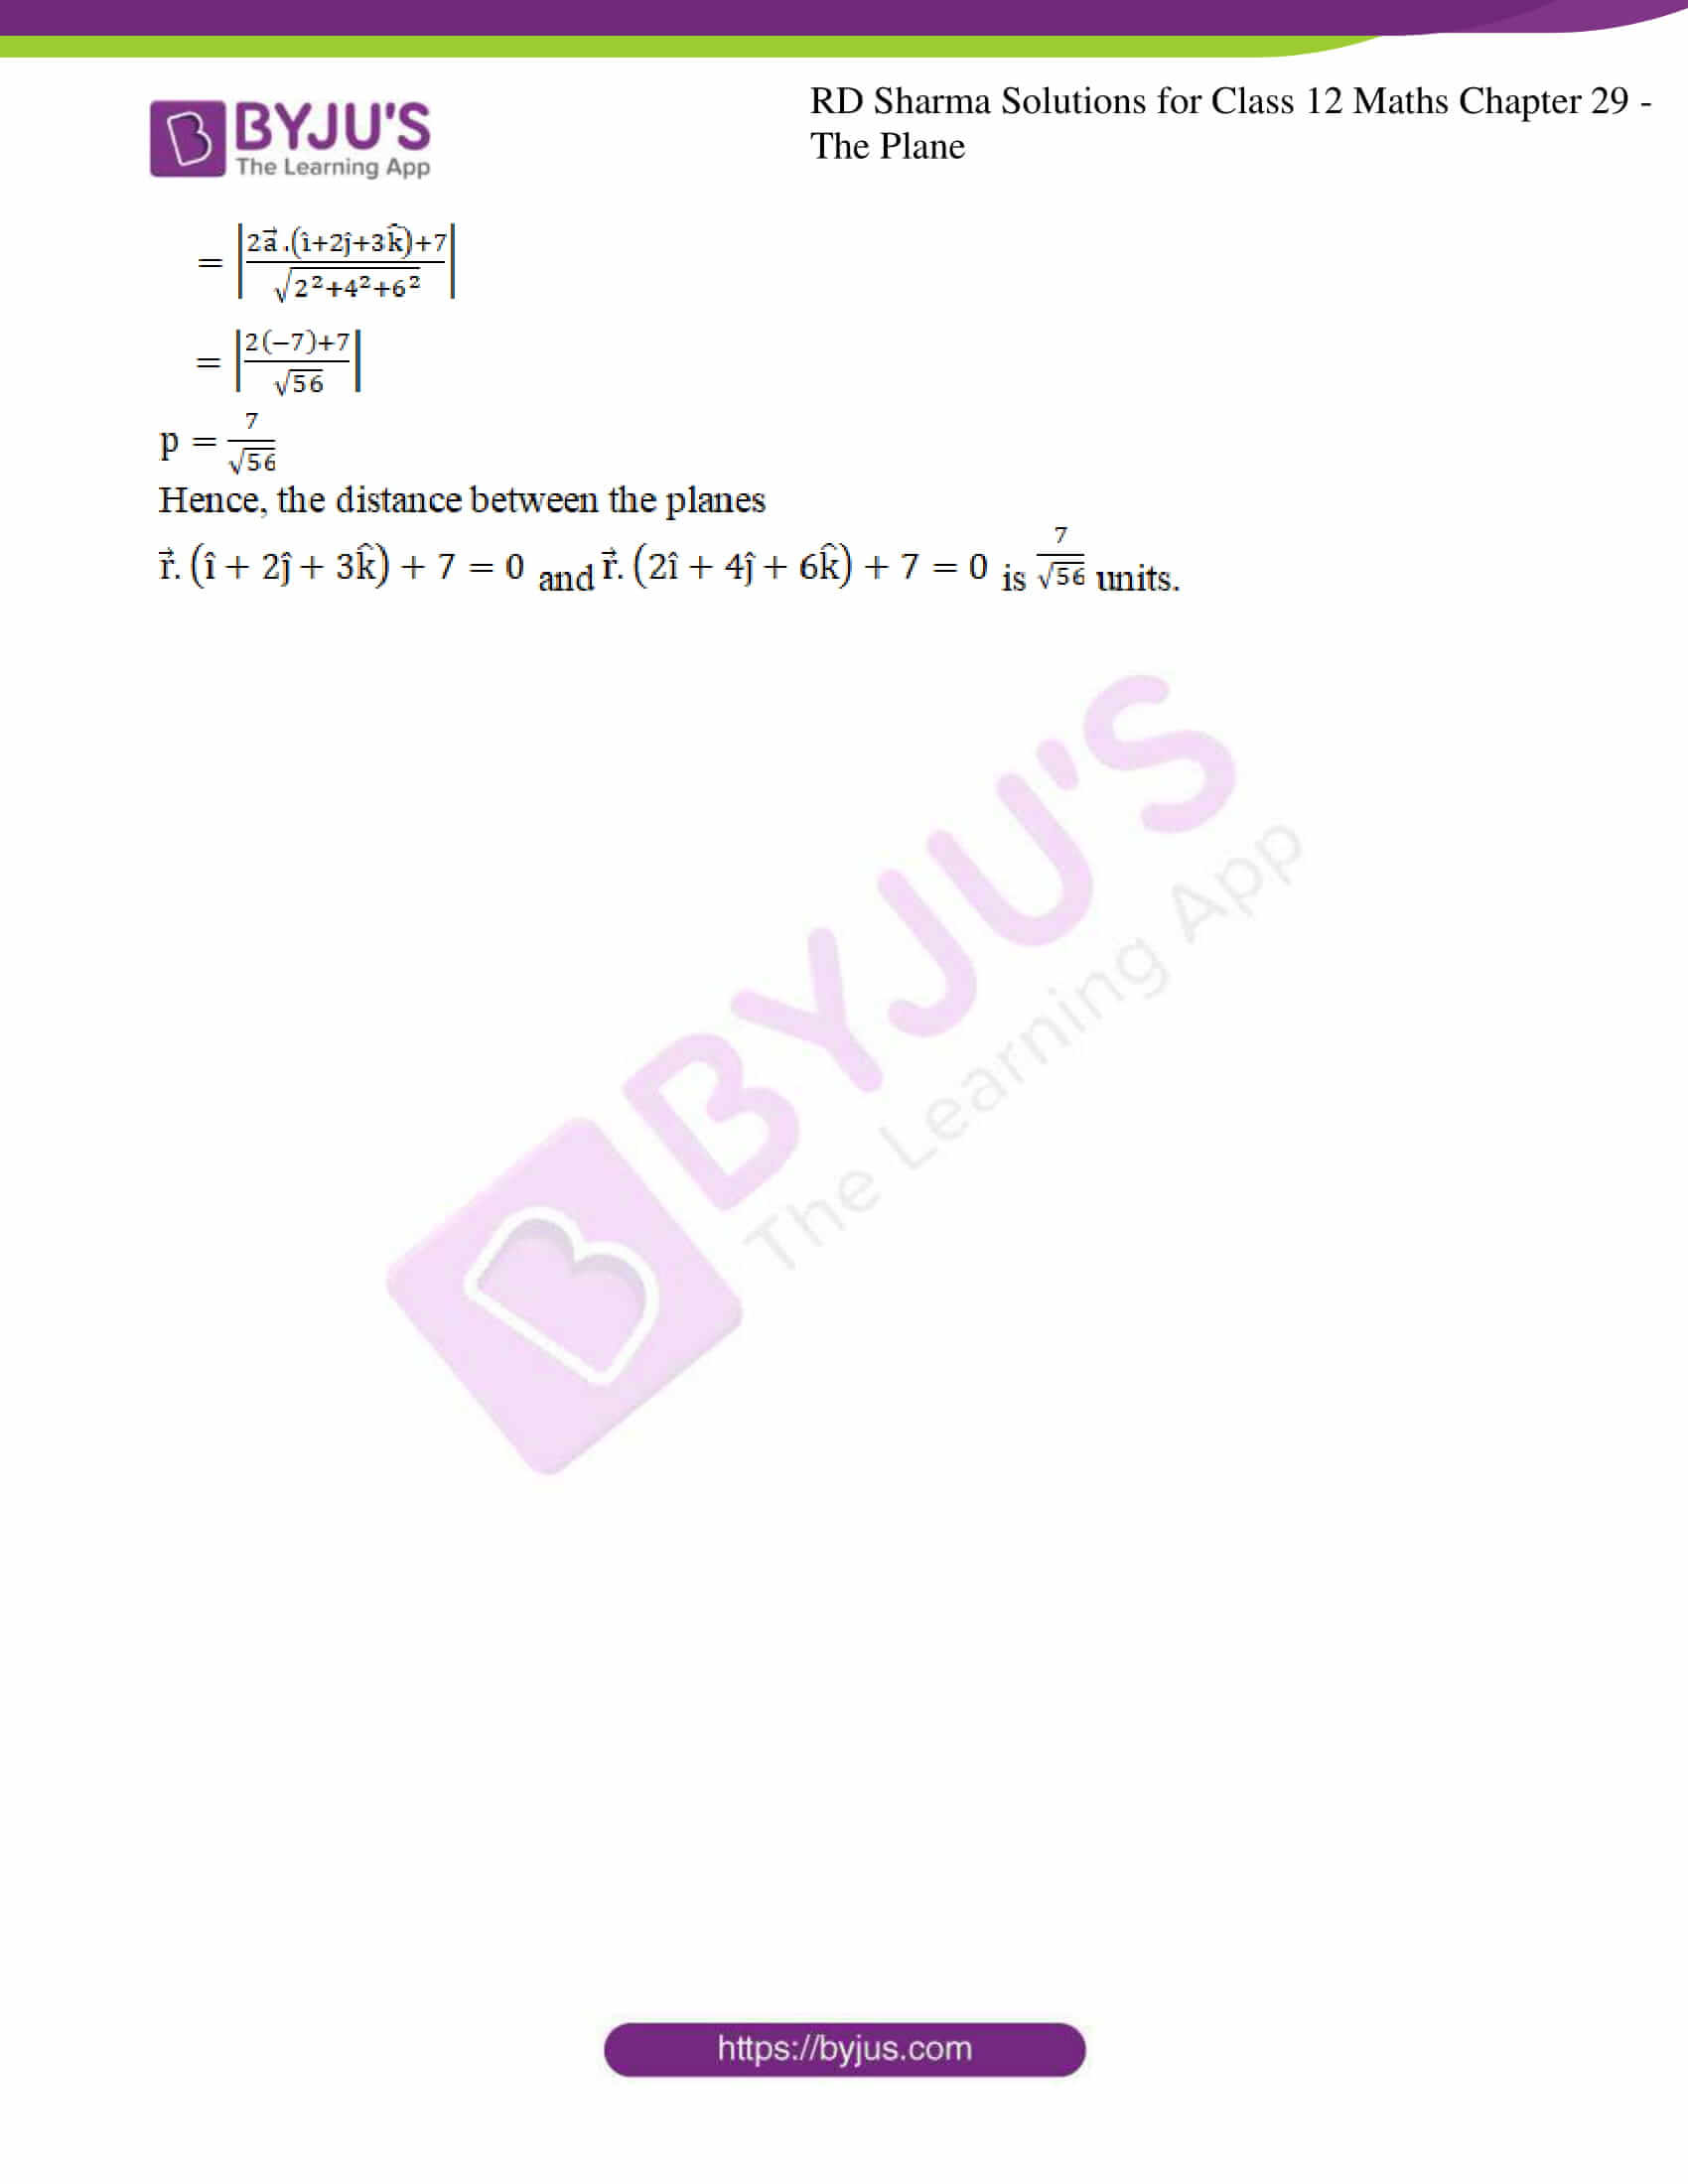 rd sharma solutions for class 12 maths chapter 29 ex 10 4